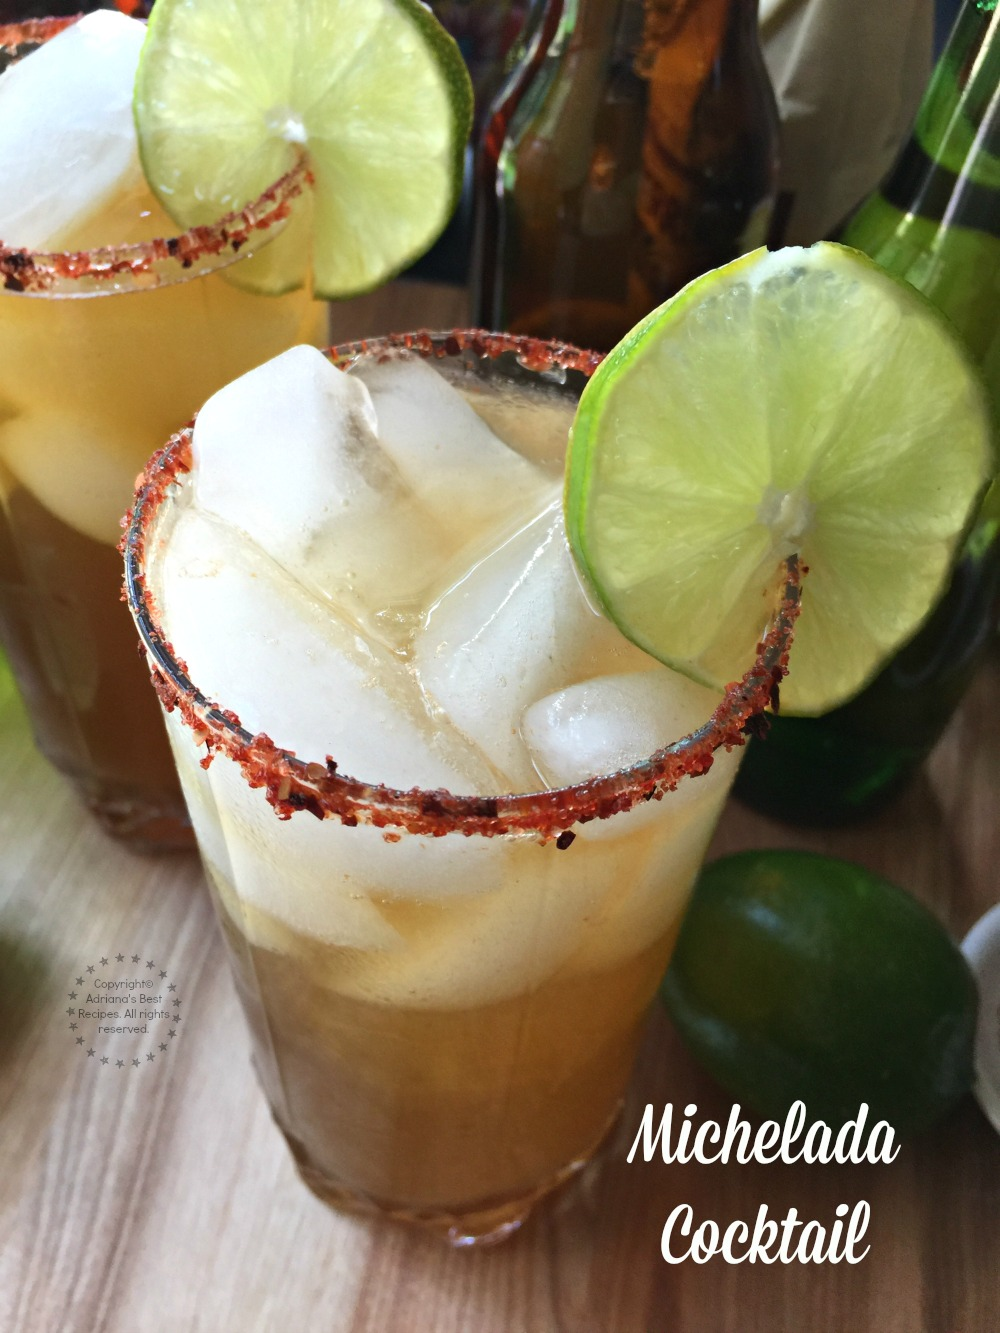 Refreshing Michelada Cocktail made with beer, lime juice, Worcestershire sauce and TABASCO